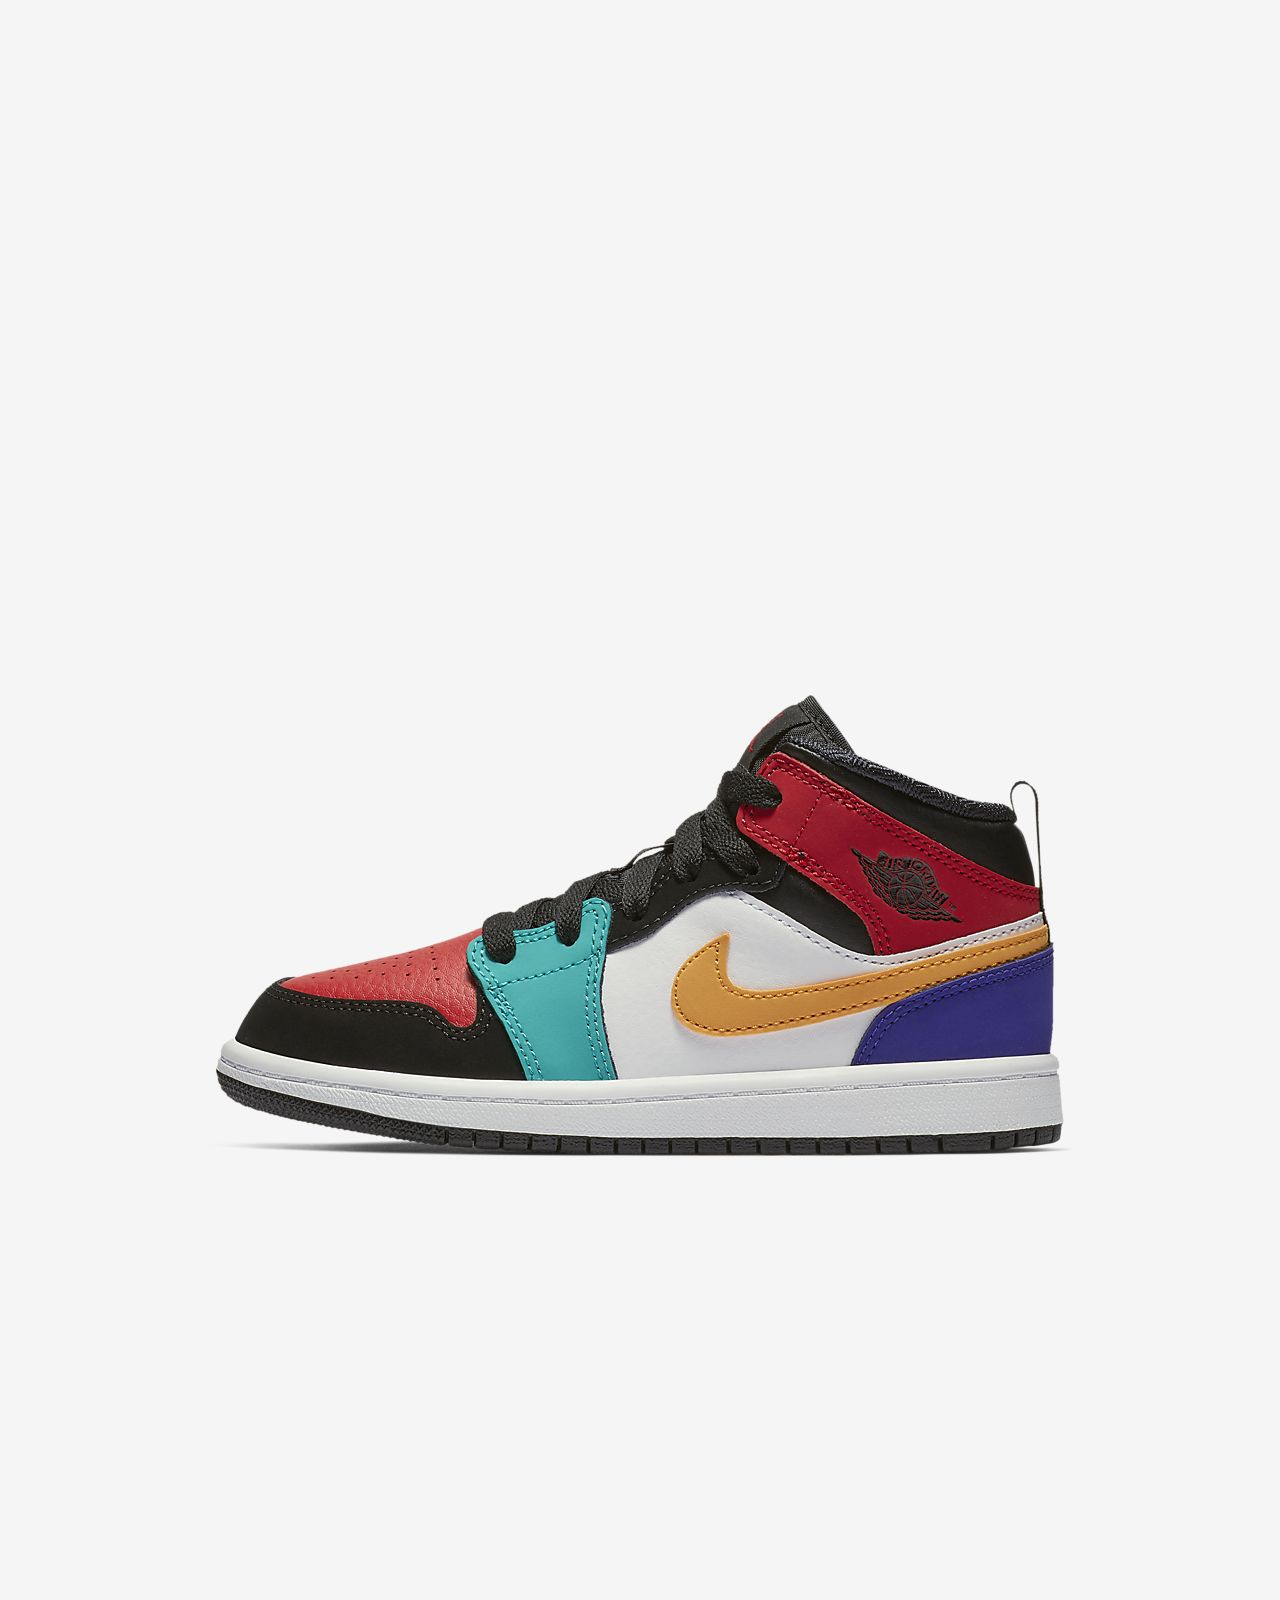 cheaper 5c2fc 2f46c Air Jordan 1 Mid